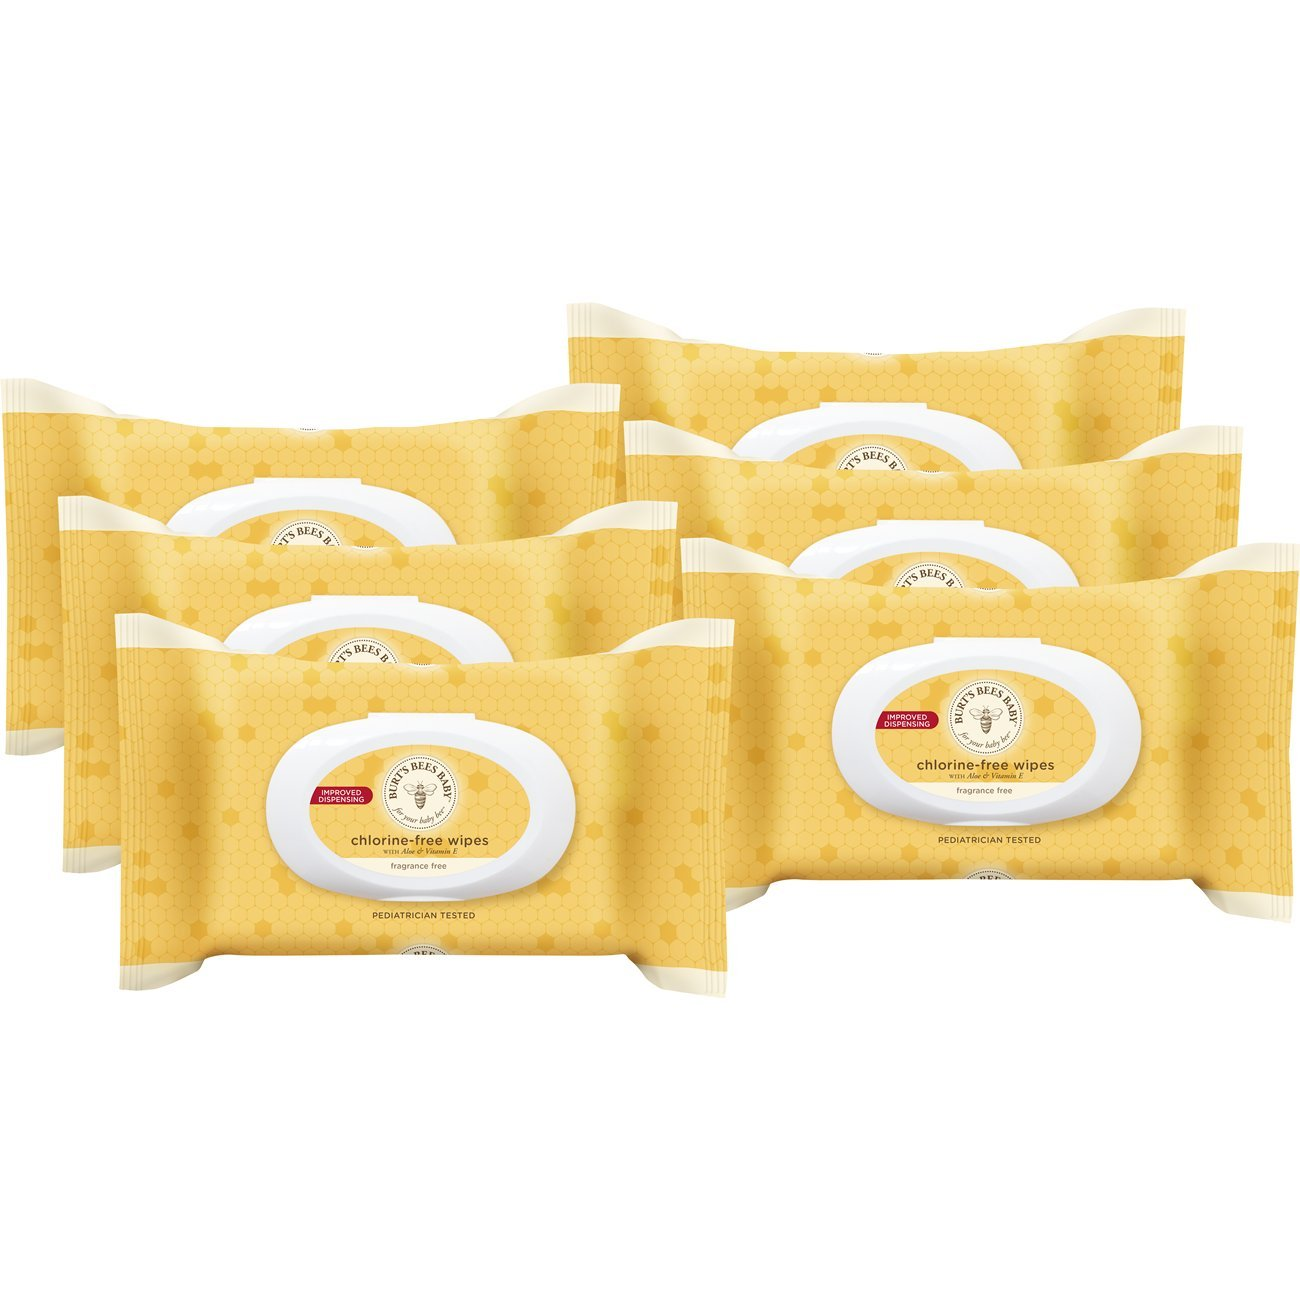 Burt's Bees Baby Chlorine-Free Wipes, Unscented Natural Baby Wipes – 72 Wipes (Pack of 6)